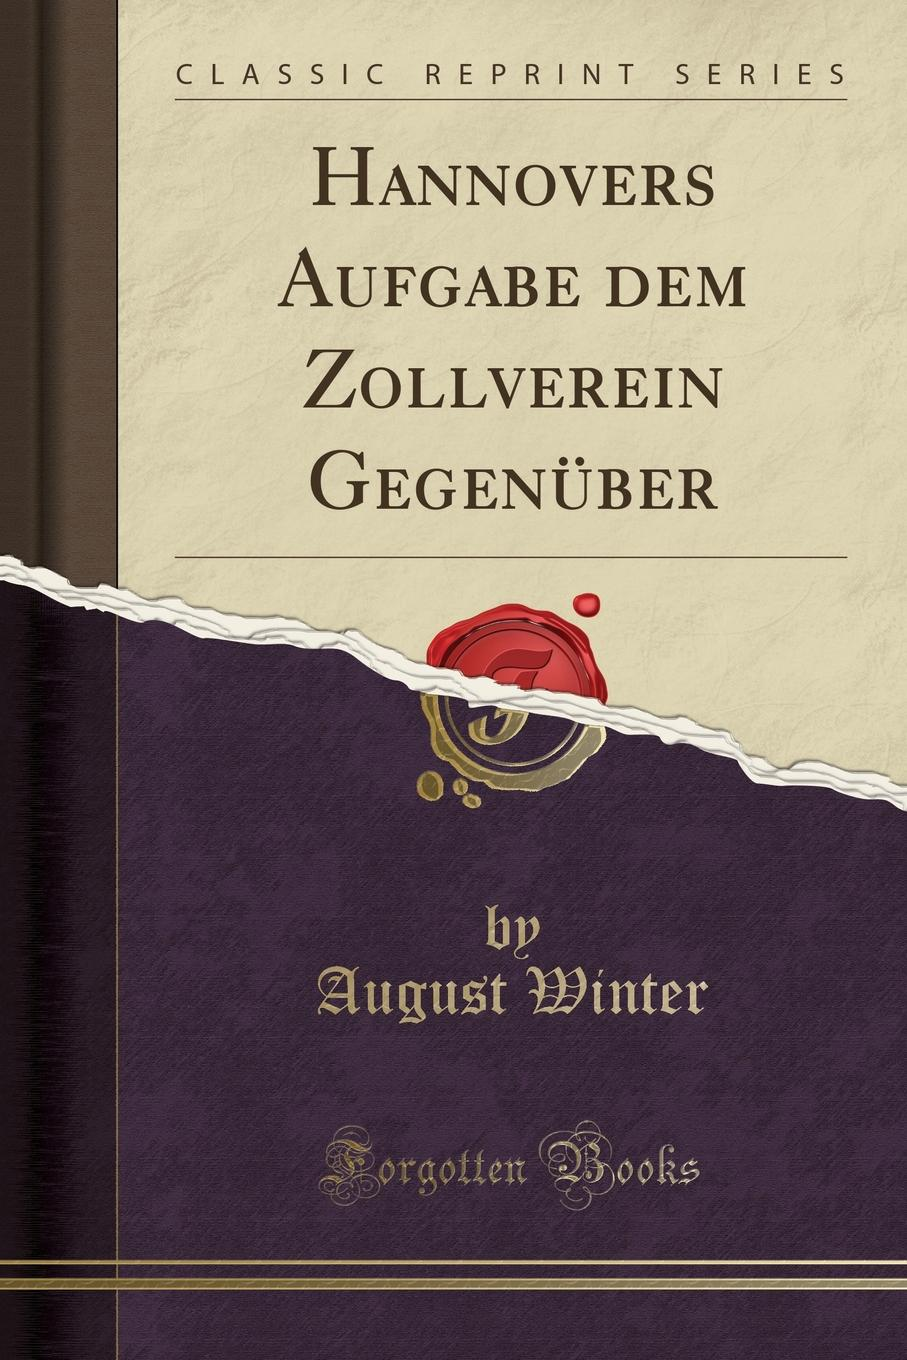 August Winter Hannovers Aufgabe dem Zollverein Gegenuber (Classic Reprint) видеорегистратор lexand lr57